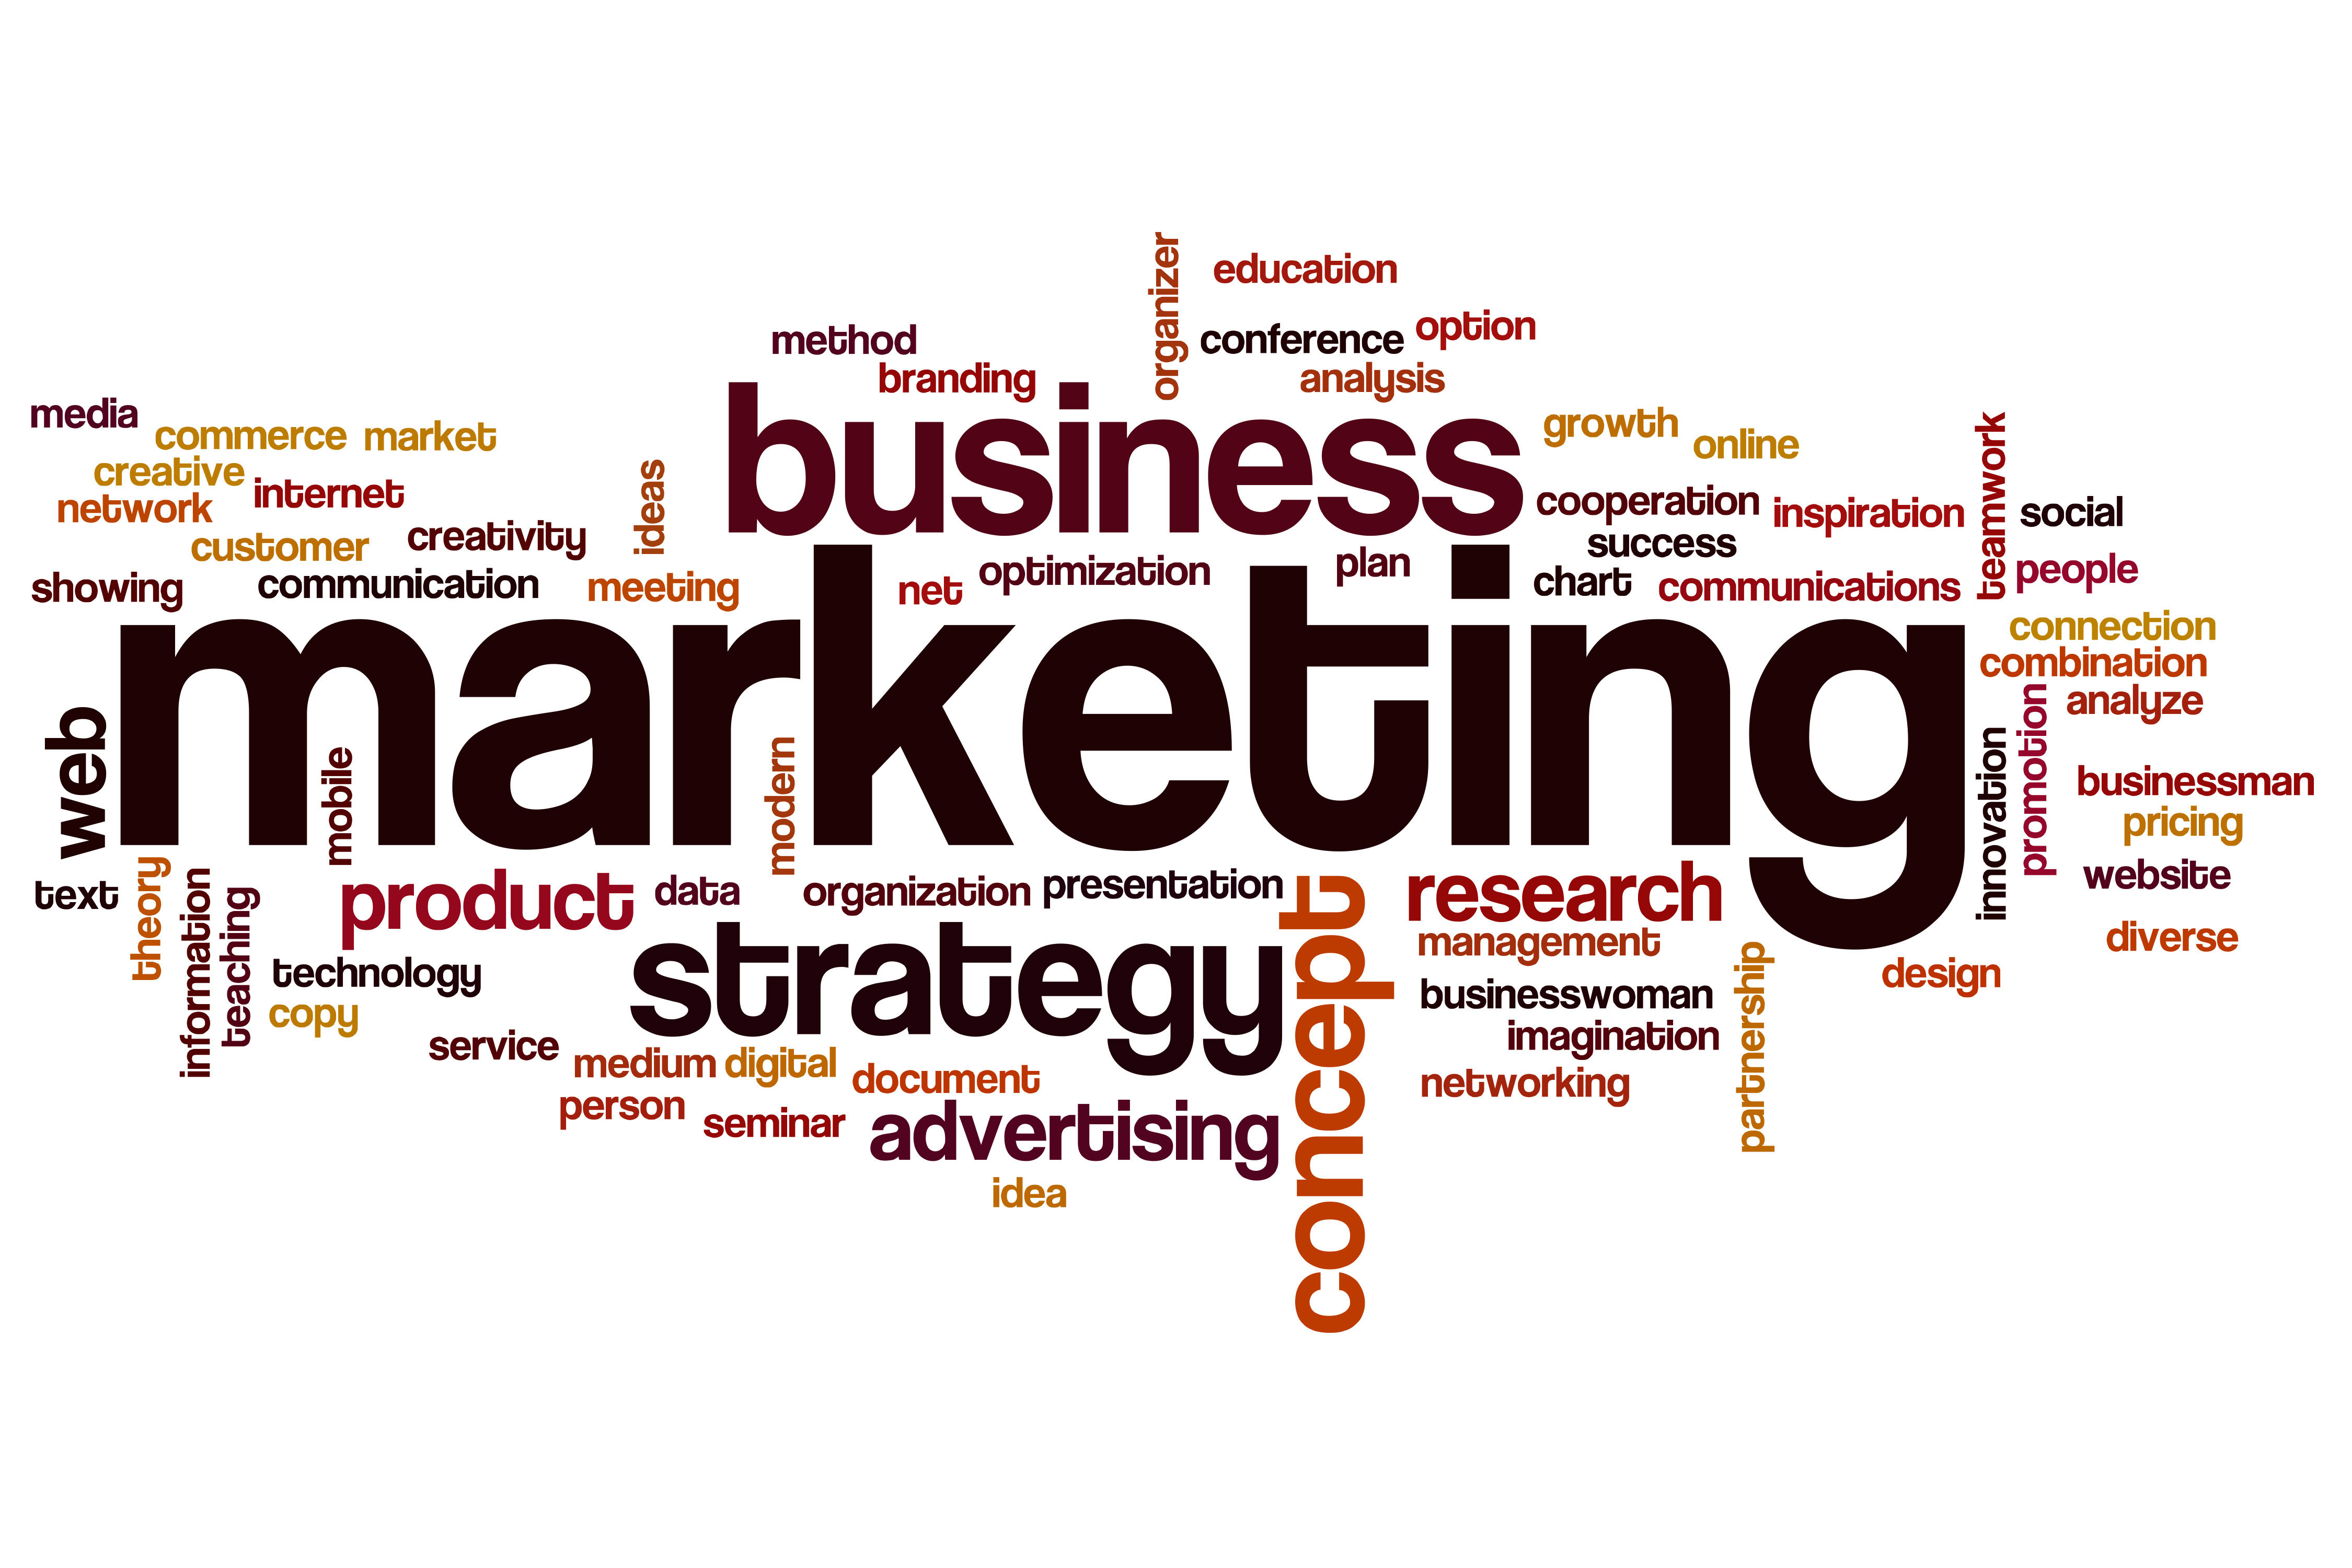 Advertising Analysis Providers in The Age of Social Media